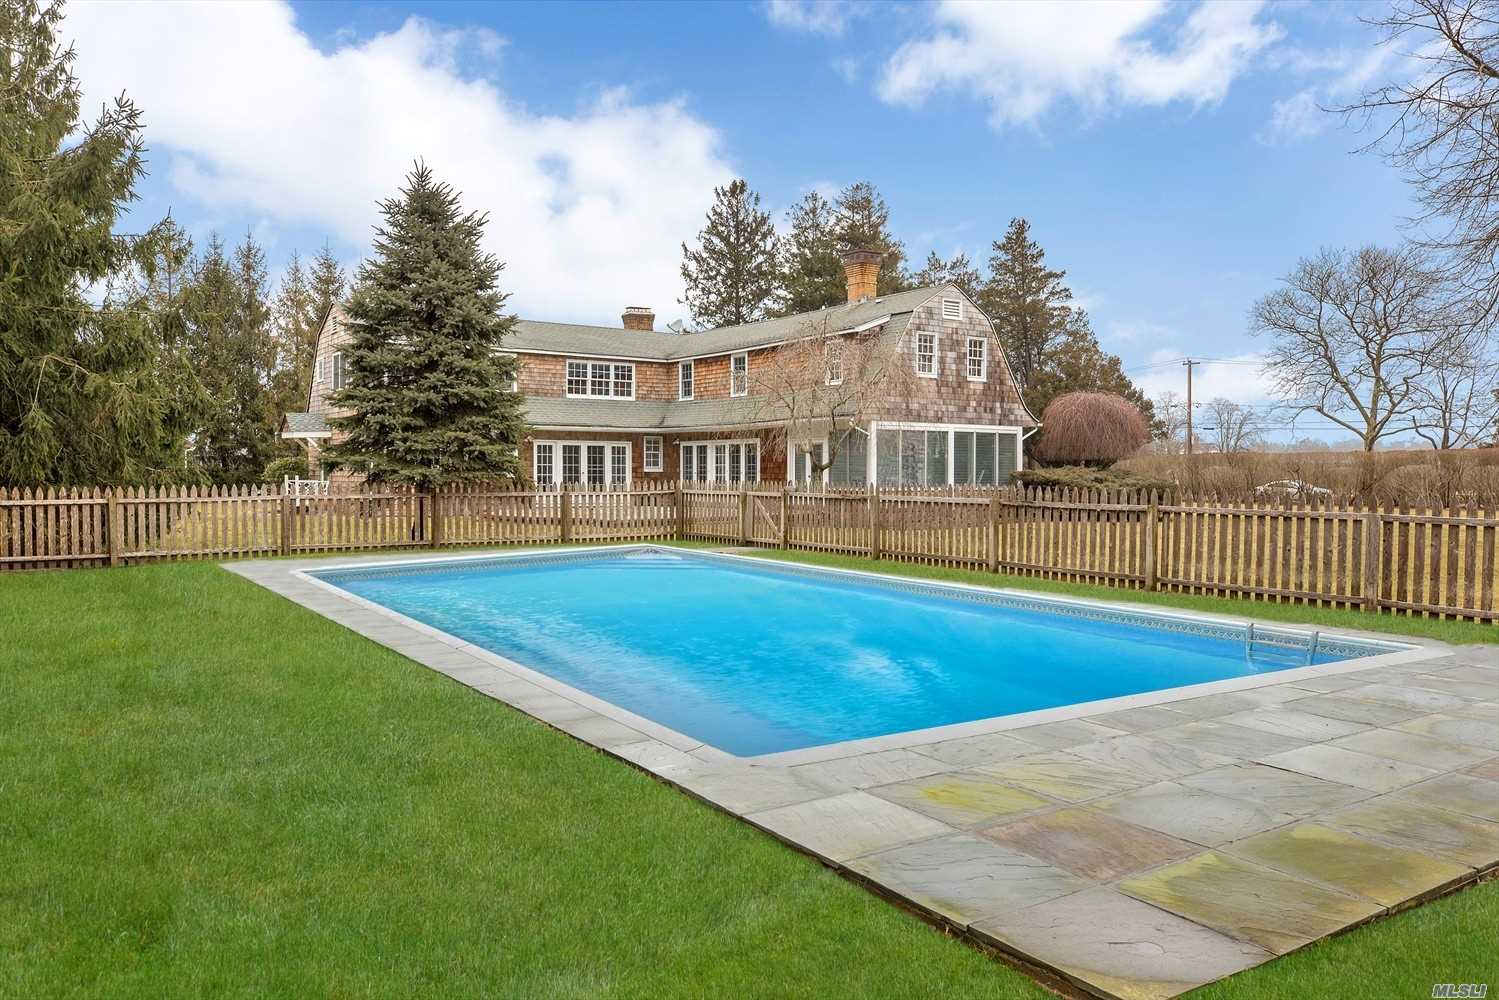 Spectacular New Renovations. This Beach Home is located right in the heart of the Village. 4 En-Suite Bedrooms make for the perfect rental. Chef's Epicurean kitchen, Great Room, Living Room, Sunroom, Formal dining room and everything is new. Full Basement, 3 car garage. Lavish Stone Patio, Gunite Pool, Waterview and Lush Landscaping make this a private oasis. Very Accessible to town with its theaters, resort shops, cafes, restaurants and the Gorgeous white sandy Rogers Beach